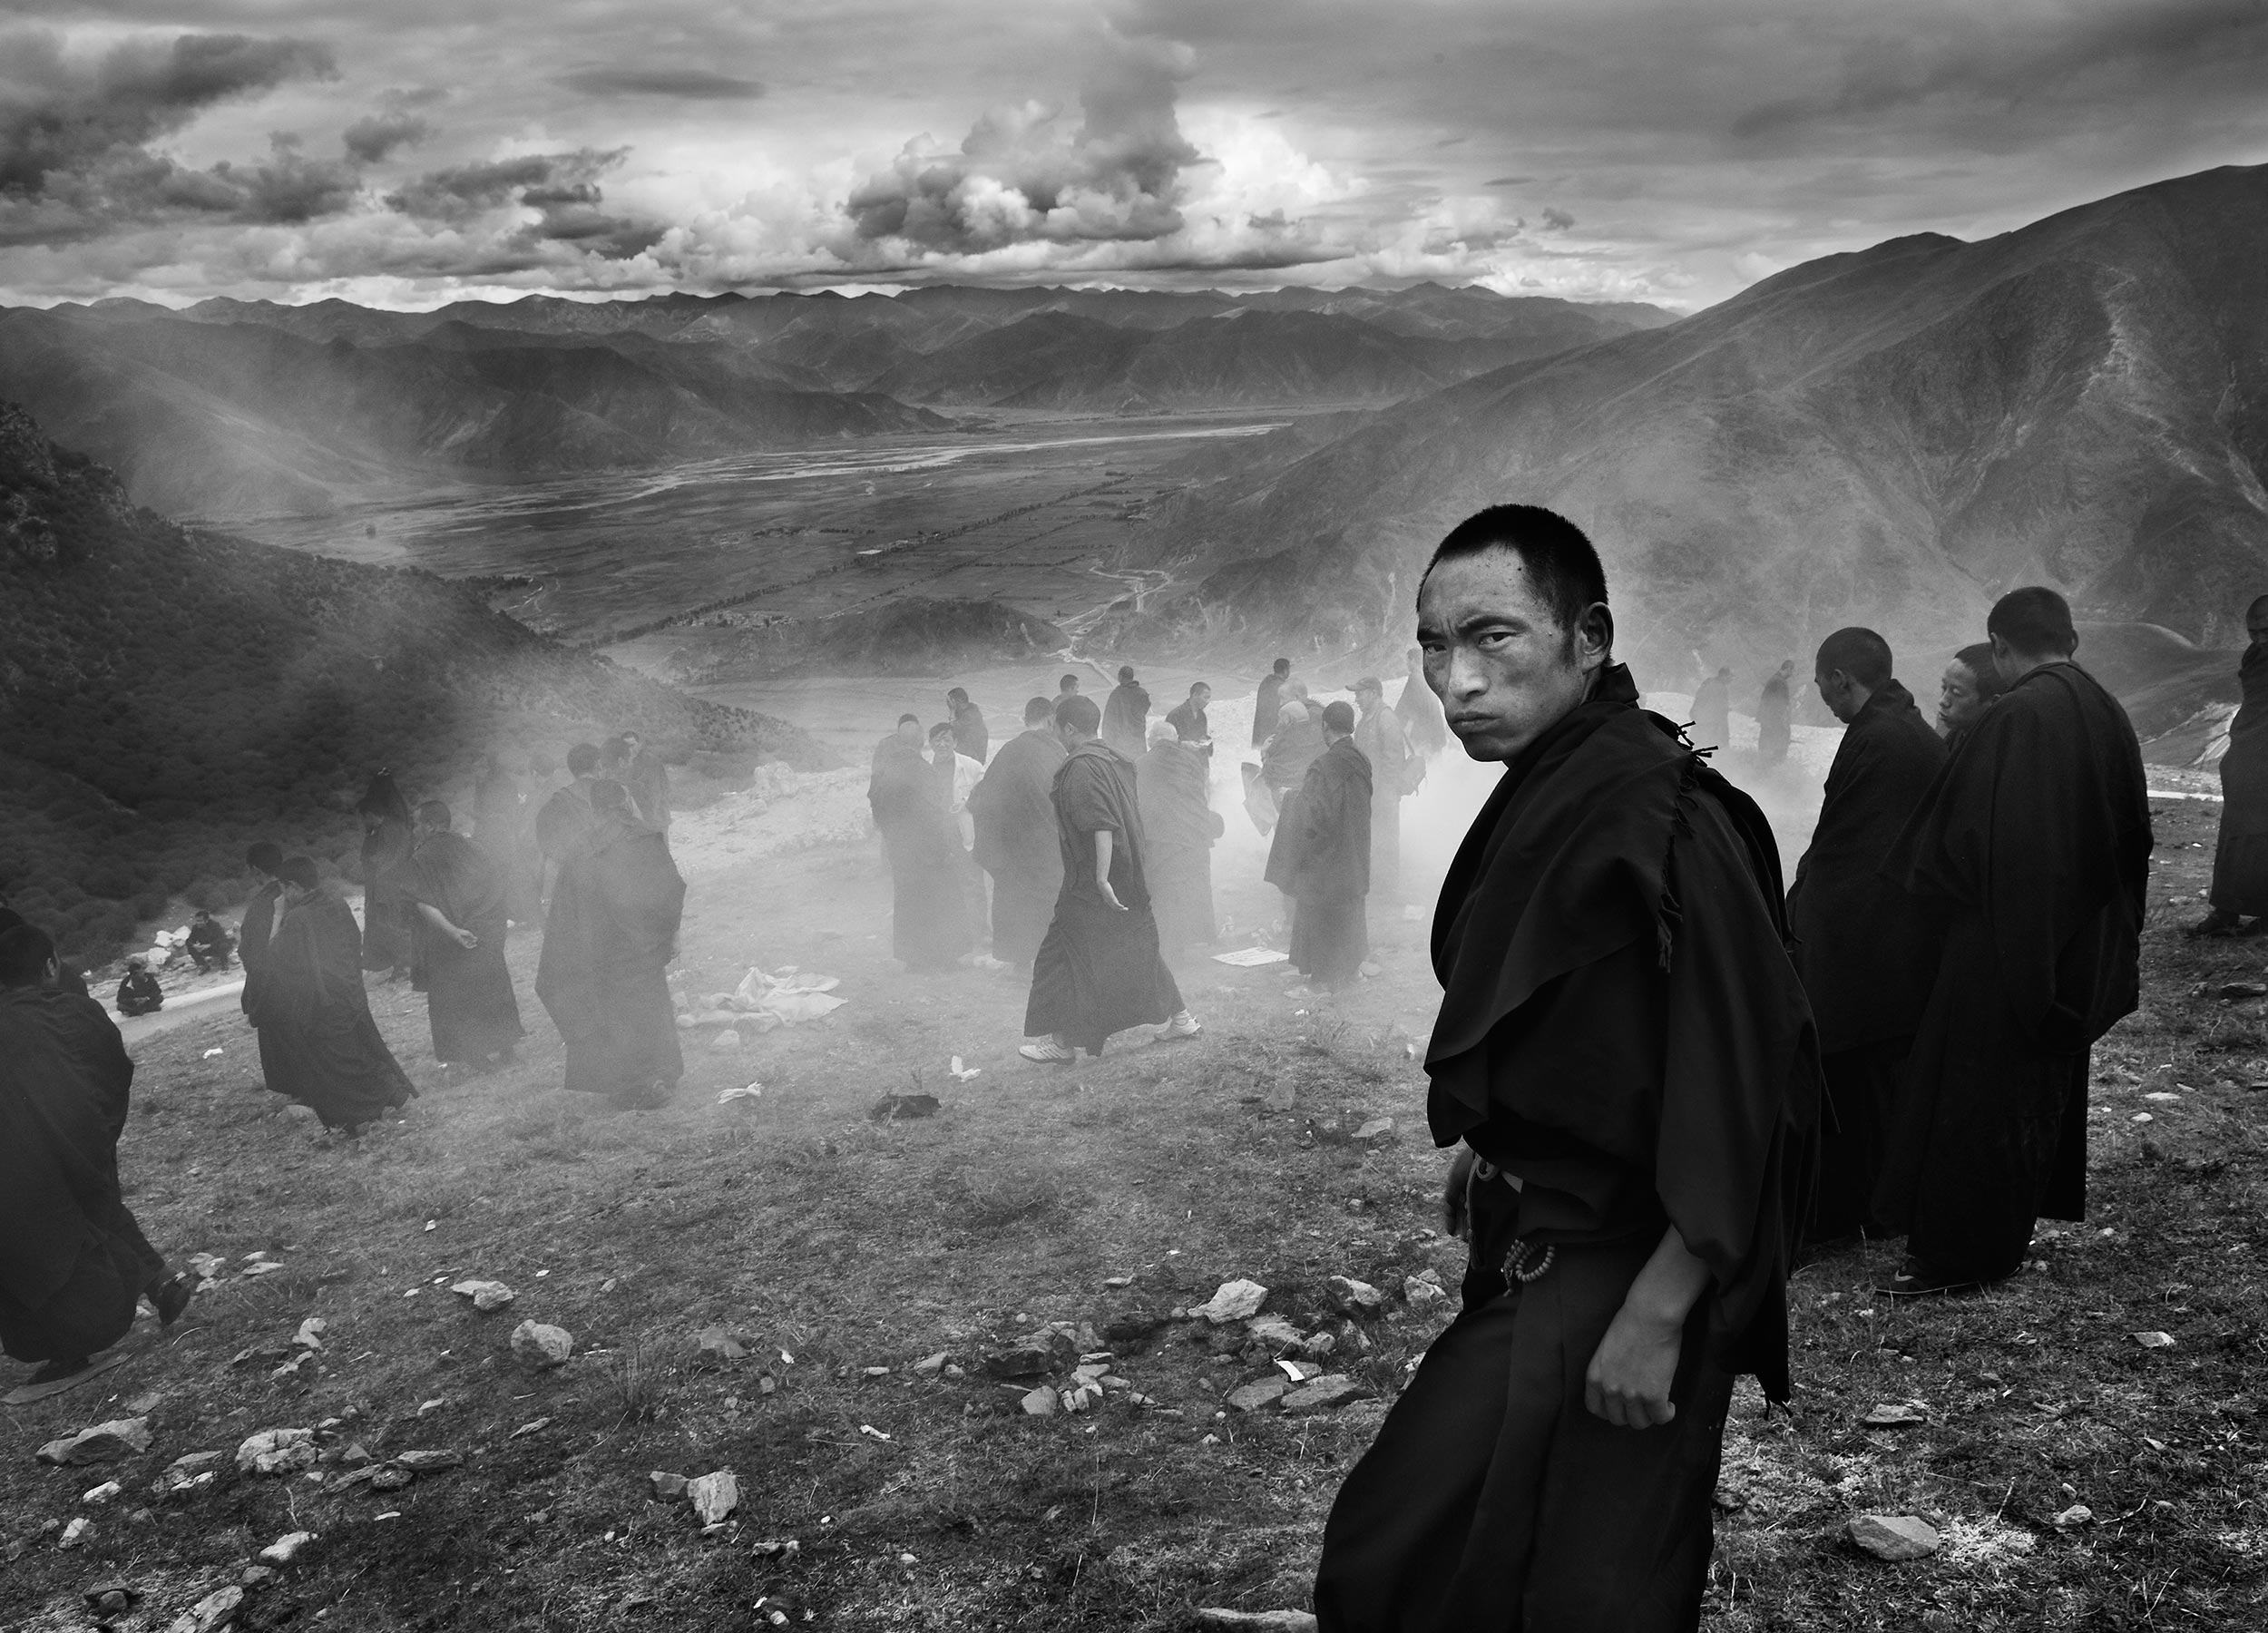 Buddhist monks walking down a misty rocky mountainside at Ganden university monastery, Tibet